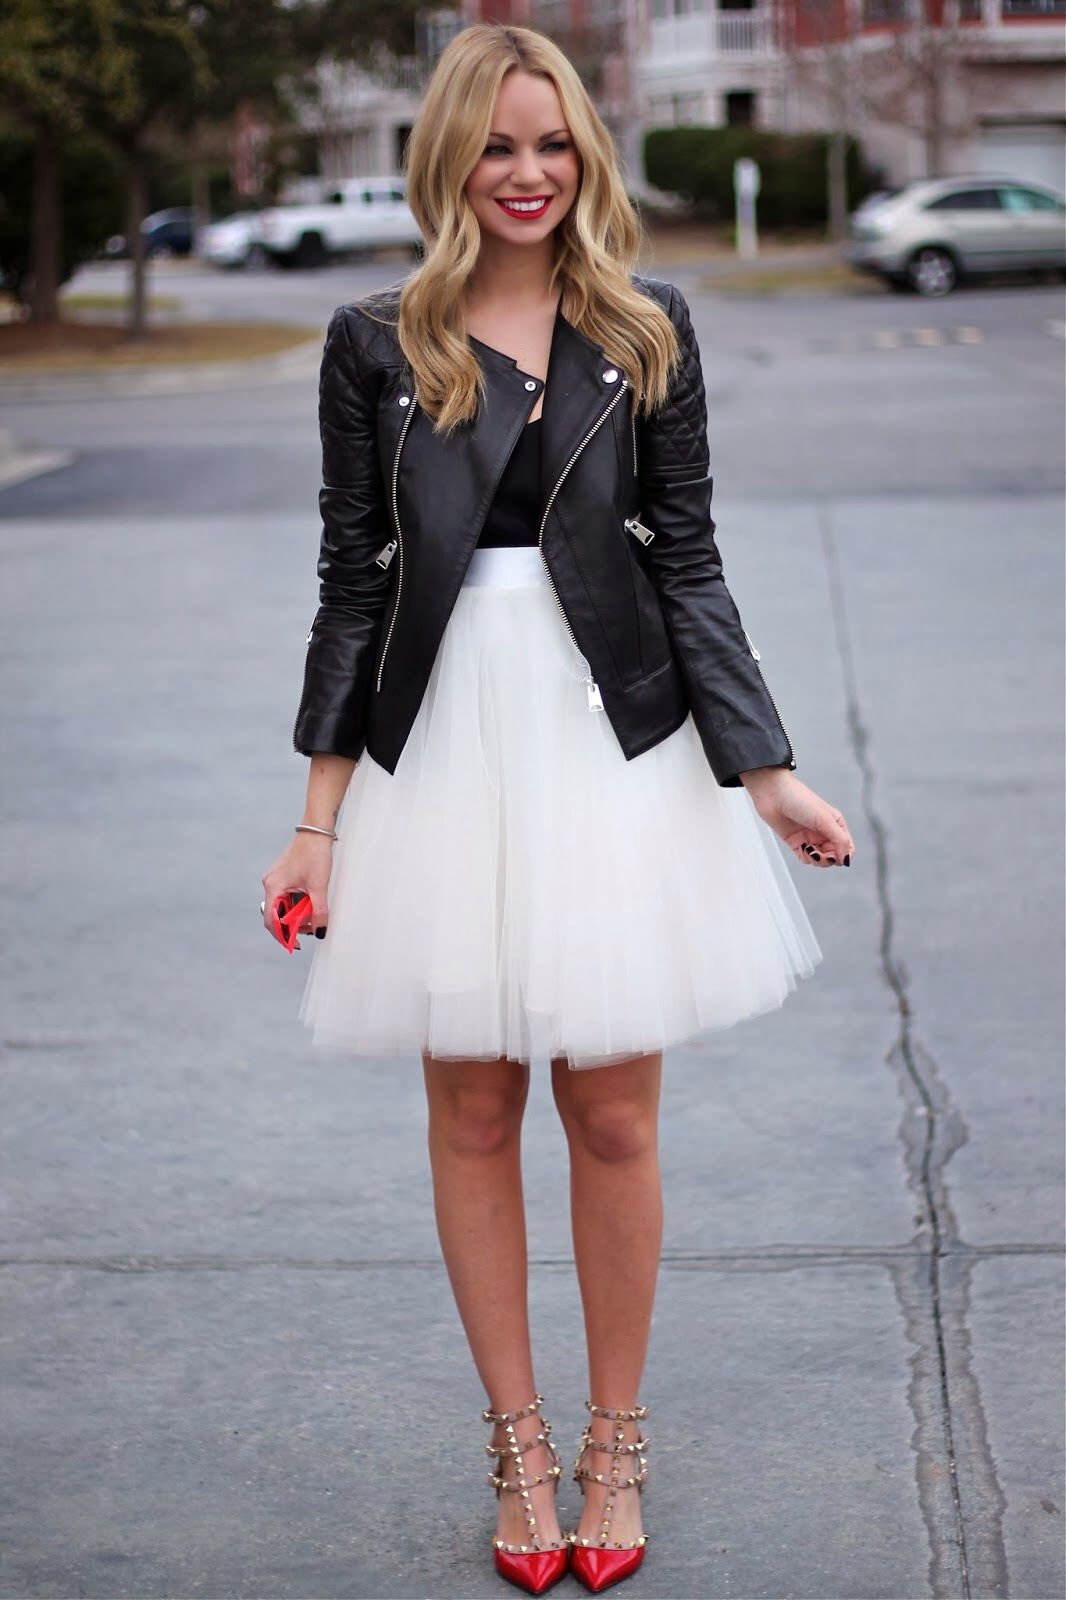 Rocking outfit in a black leather jacket and red valentino rock studs